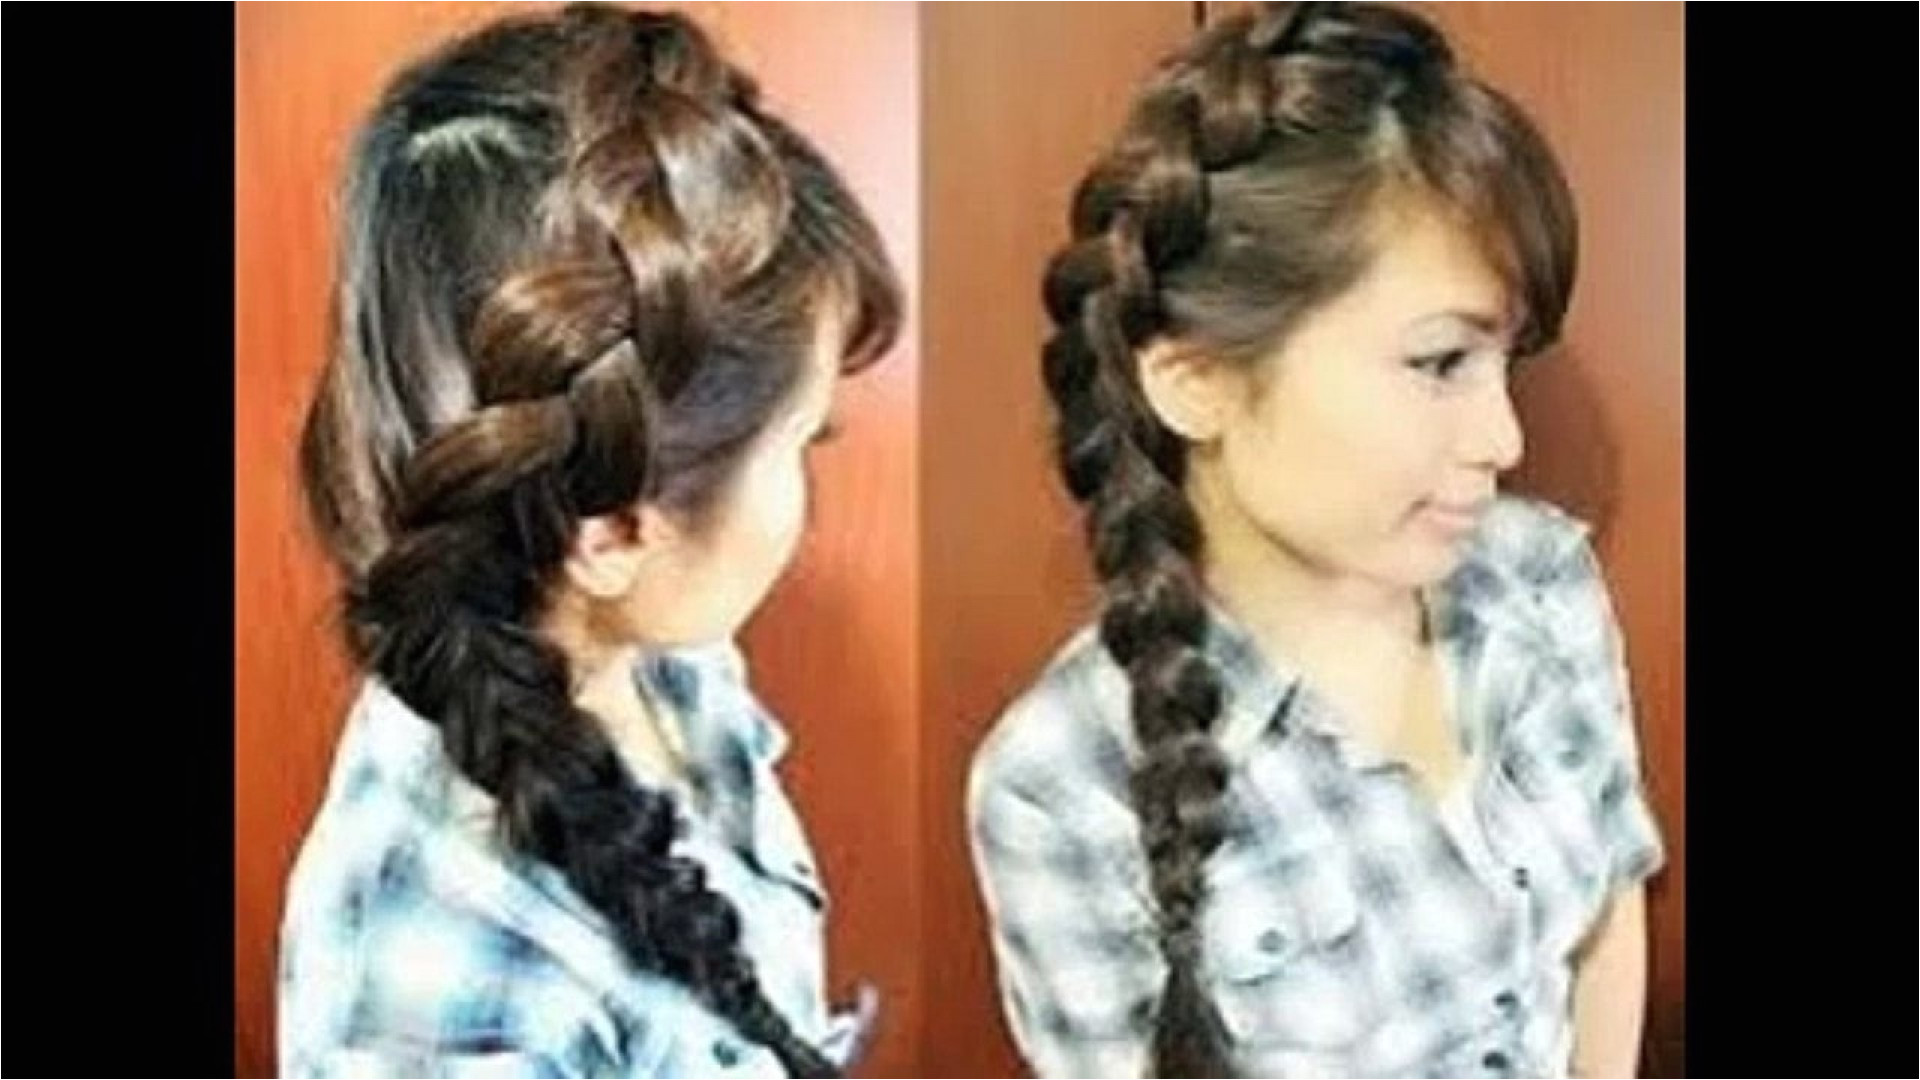 015 Very Simple Hairstyles Dailymotion Hairstyle Ideas Ways To Style Ponytail Quick Easy Video Unbelievable 1920